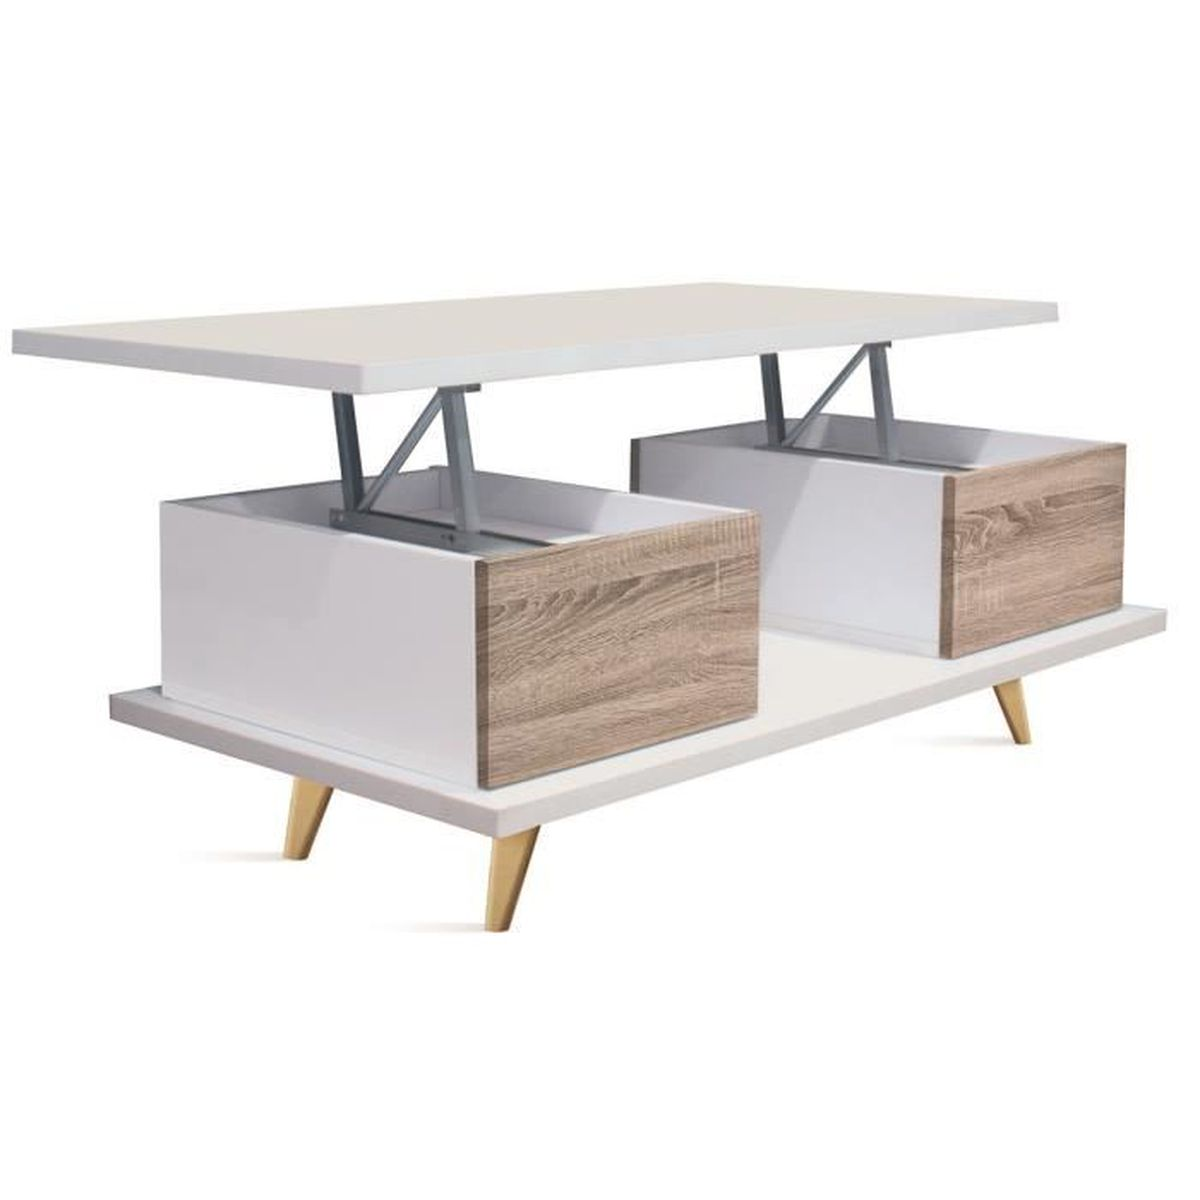 table basse relevable en bois coloris blanc cambrian. Black Bedroom Furniture Sets. Home Design Ideas